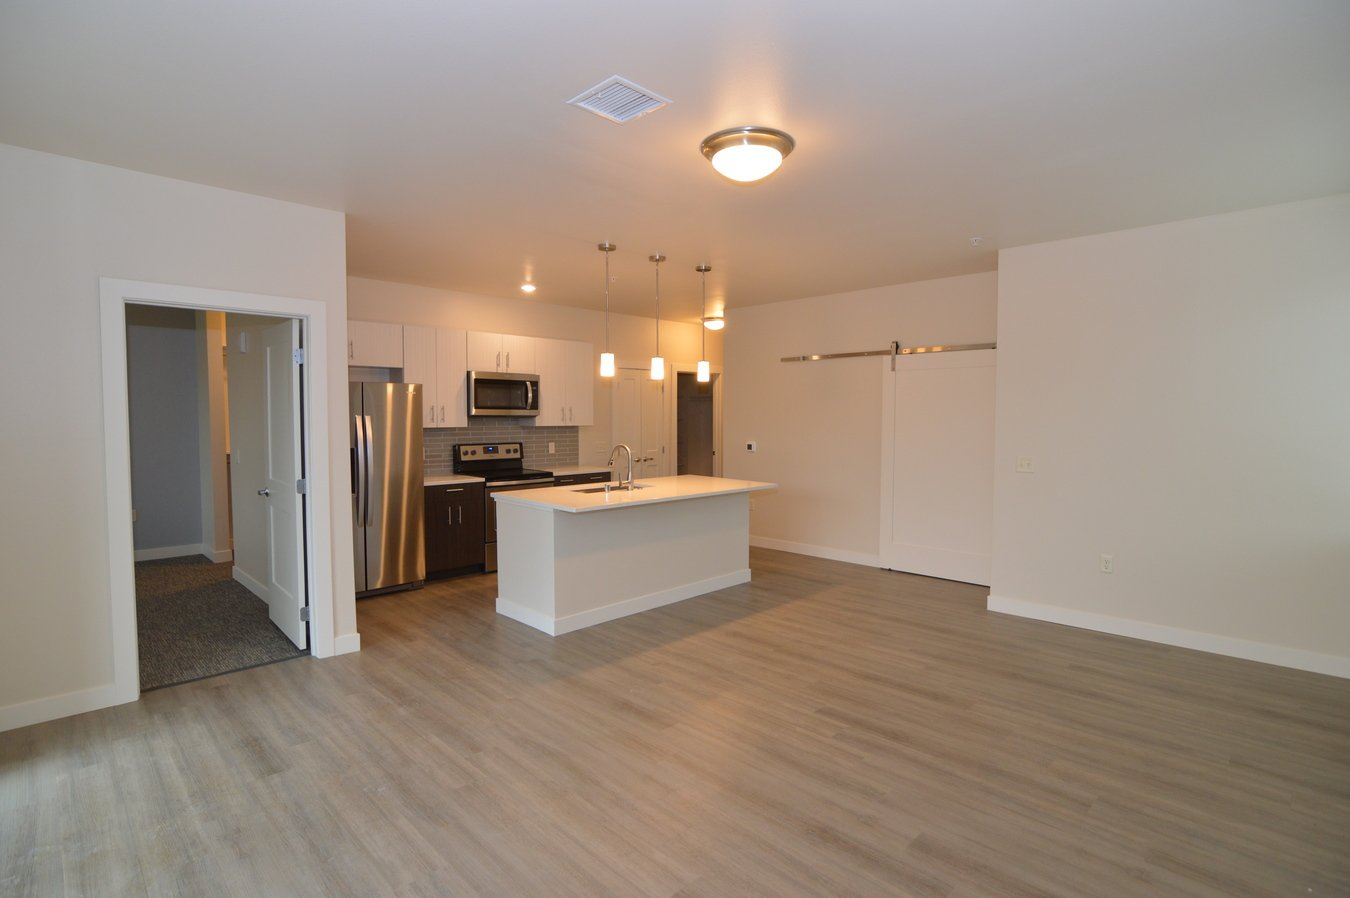 2 Bedrooms 2 Bathrooms Apartment for rent at Oakland On Monroe in Madison, WI